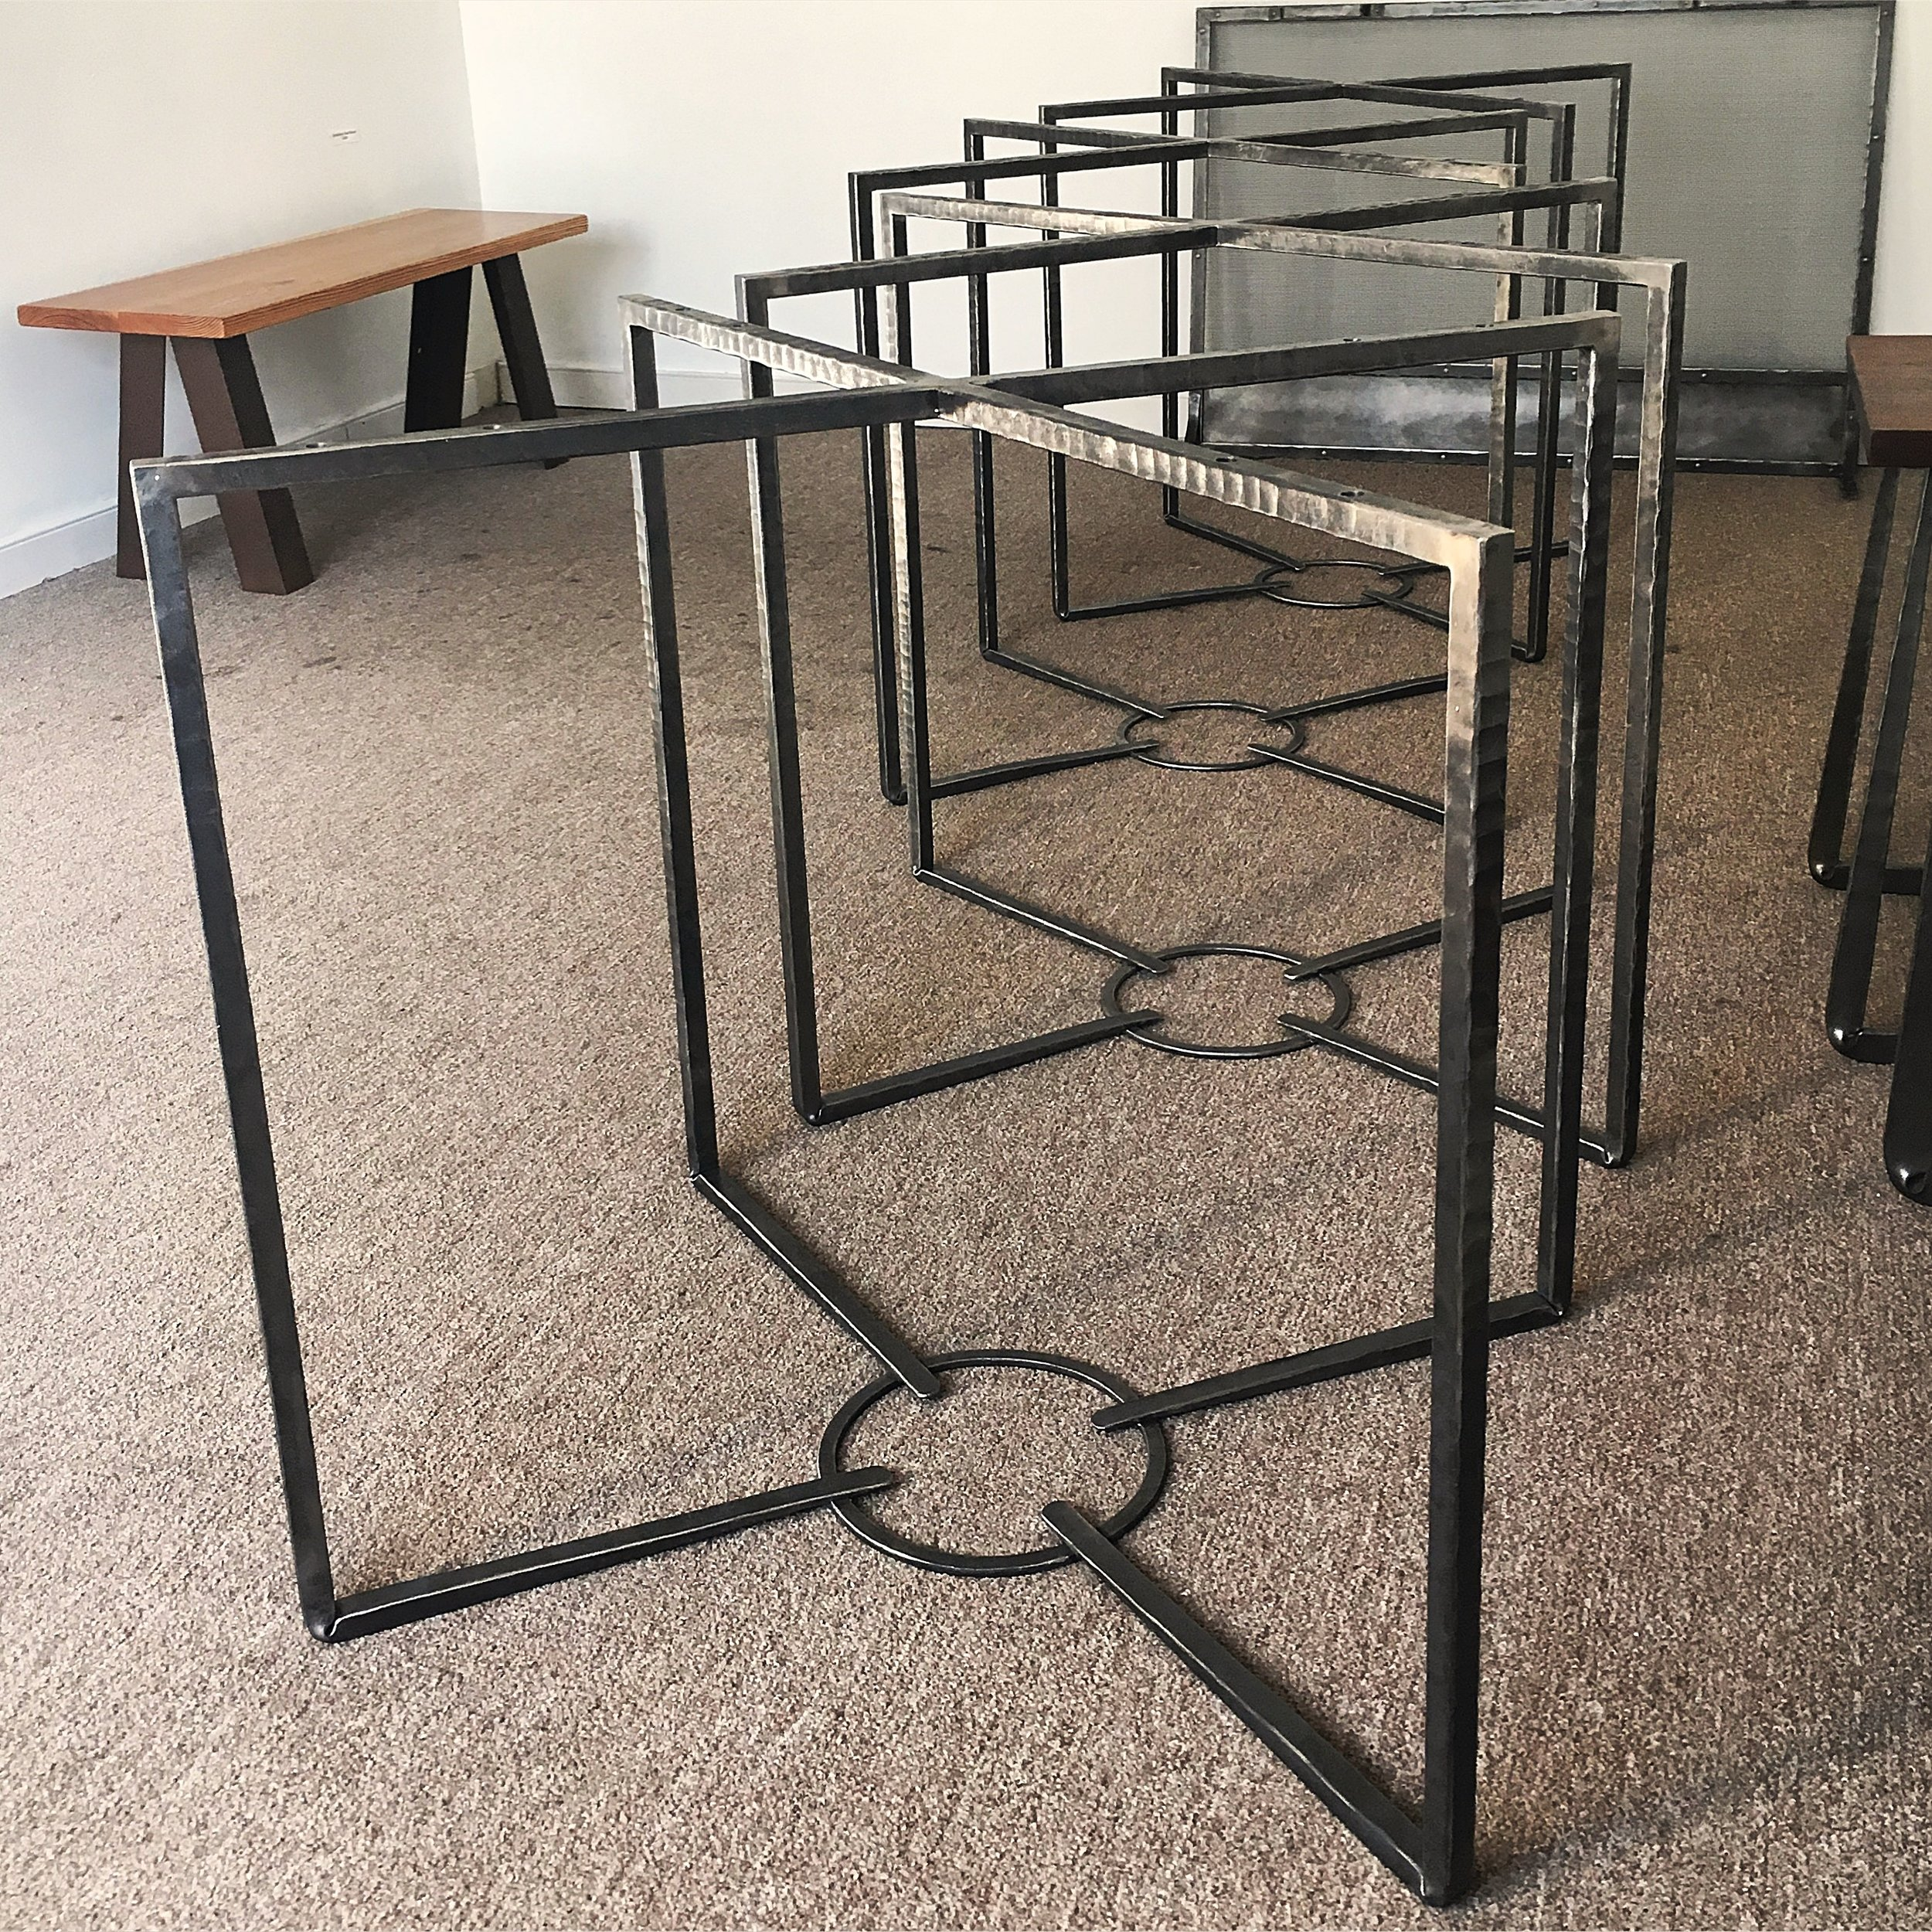 Forged steel table bases